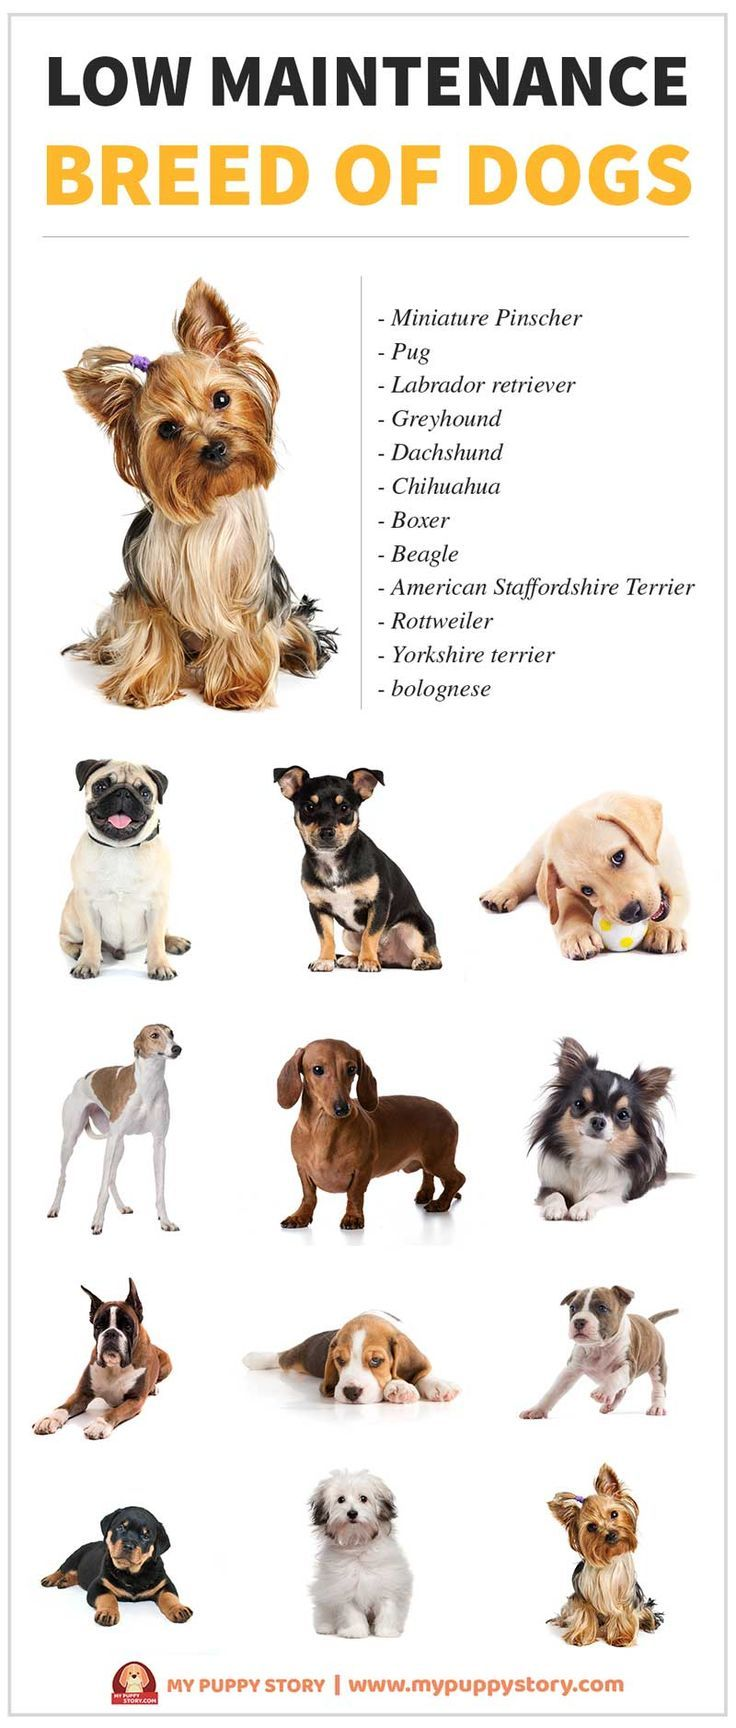 Everything You Need To Know About LowMaintenance Dogs